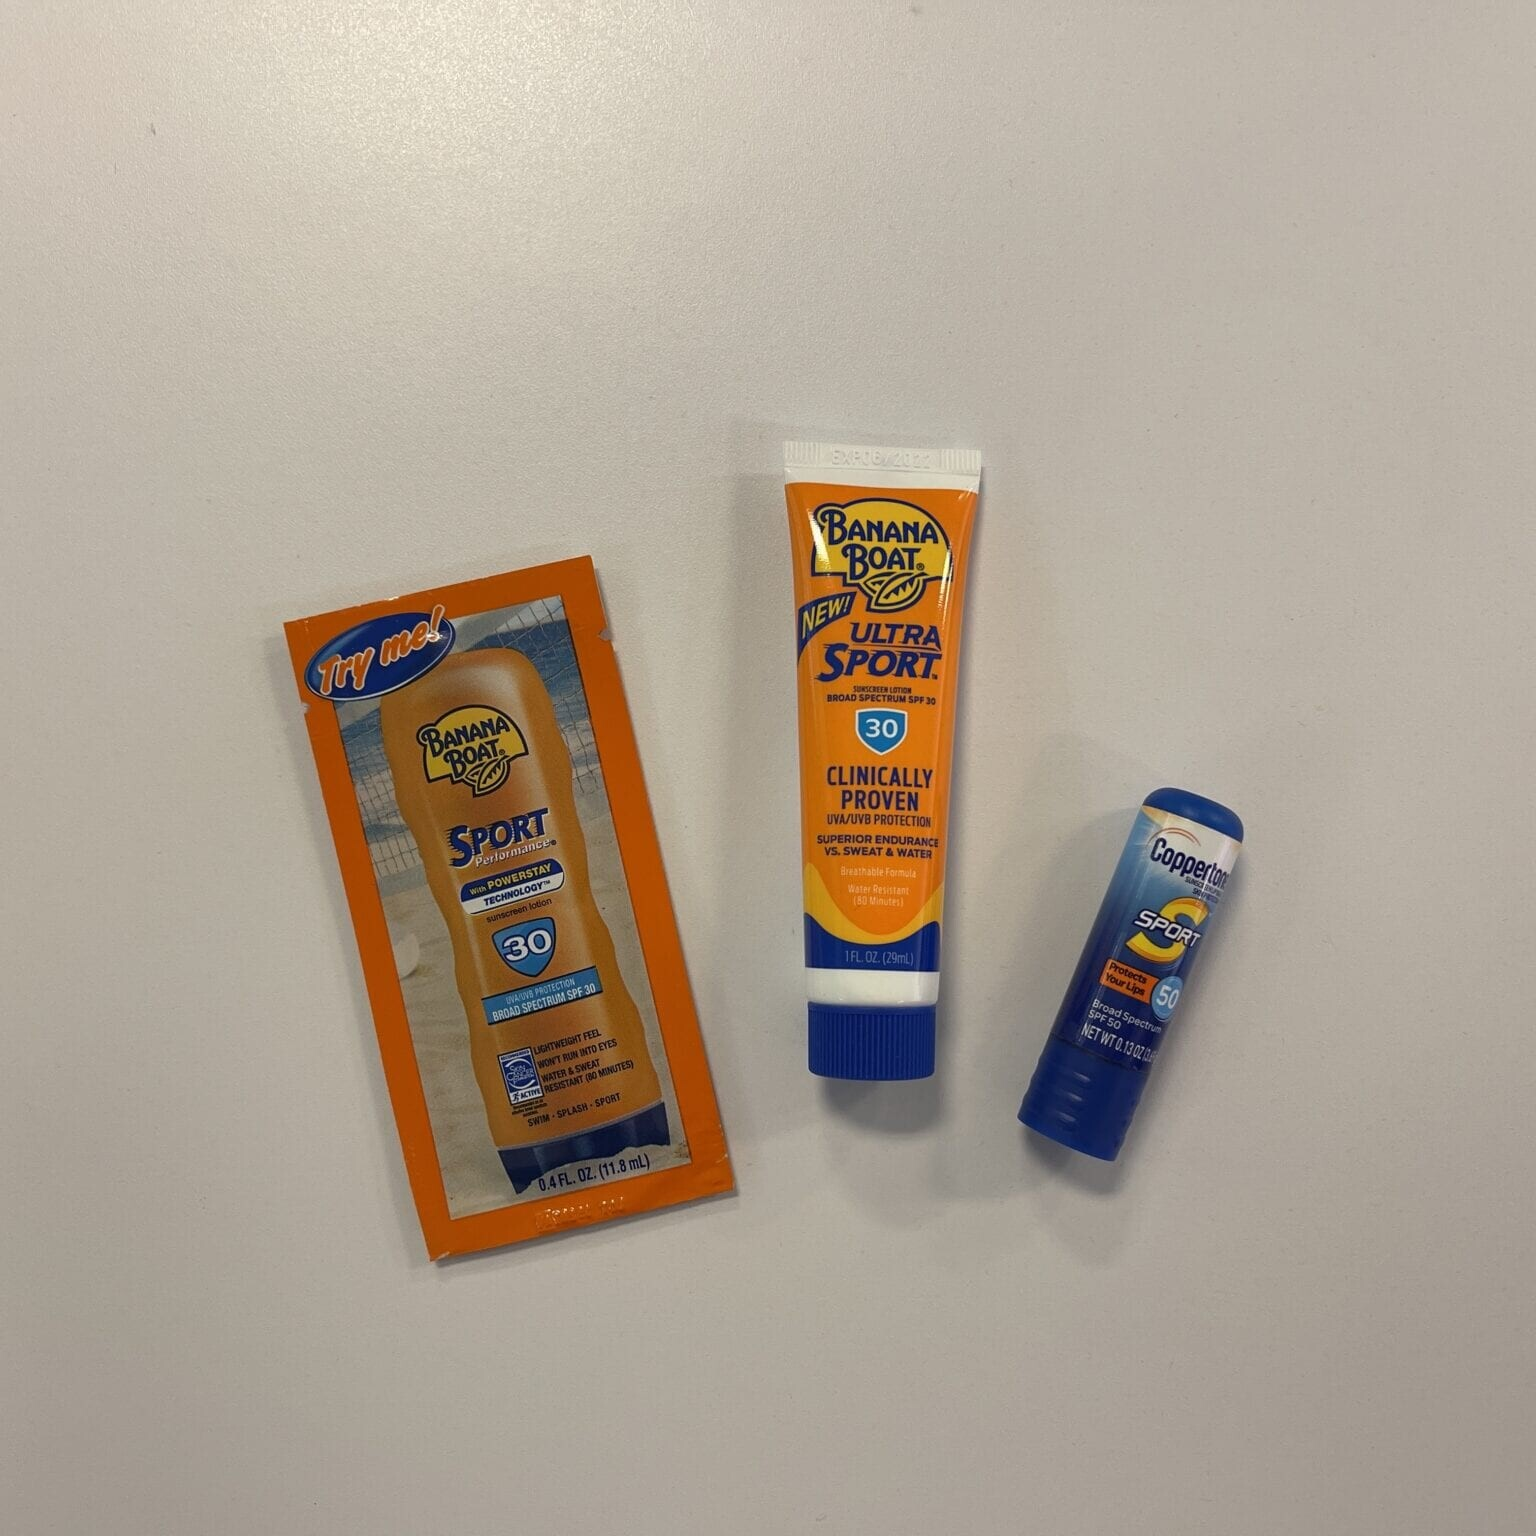 small samples of sunscreen laid on a table